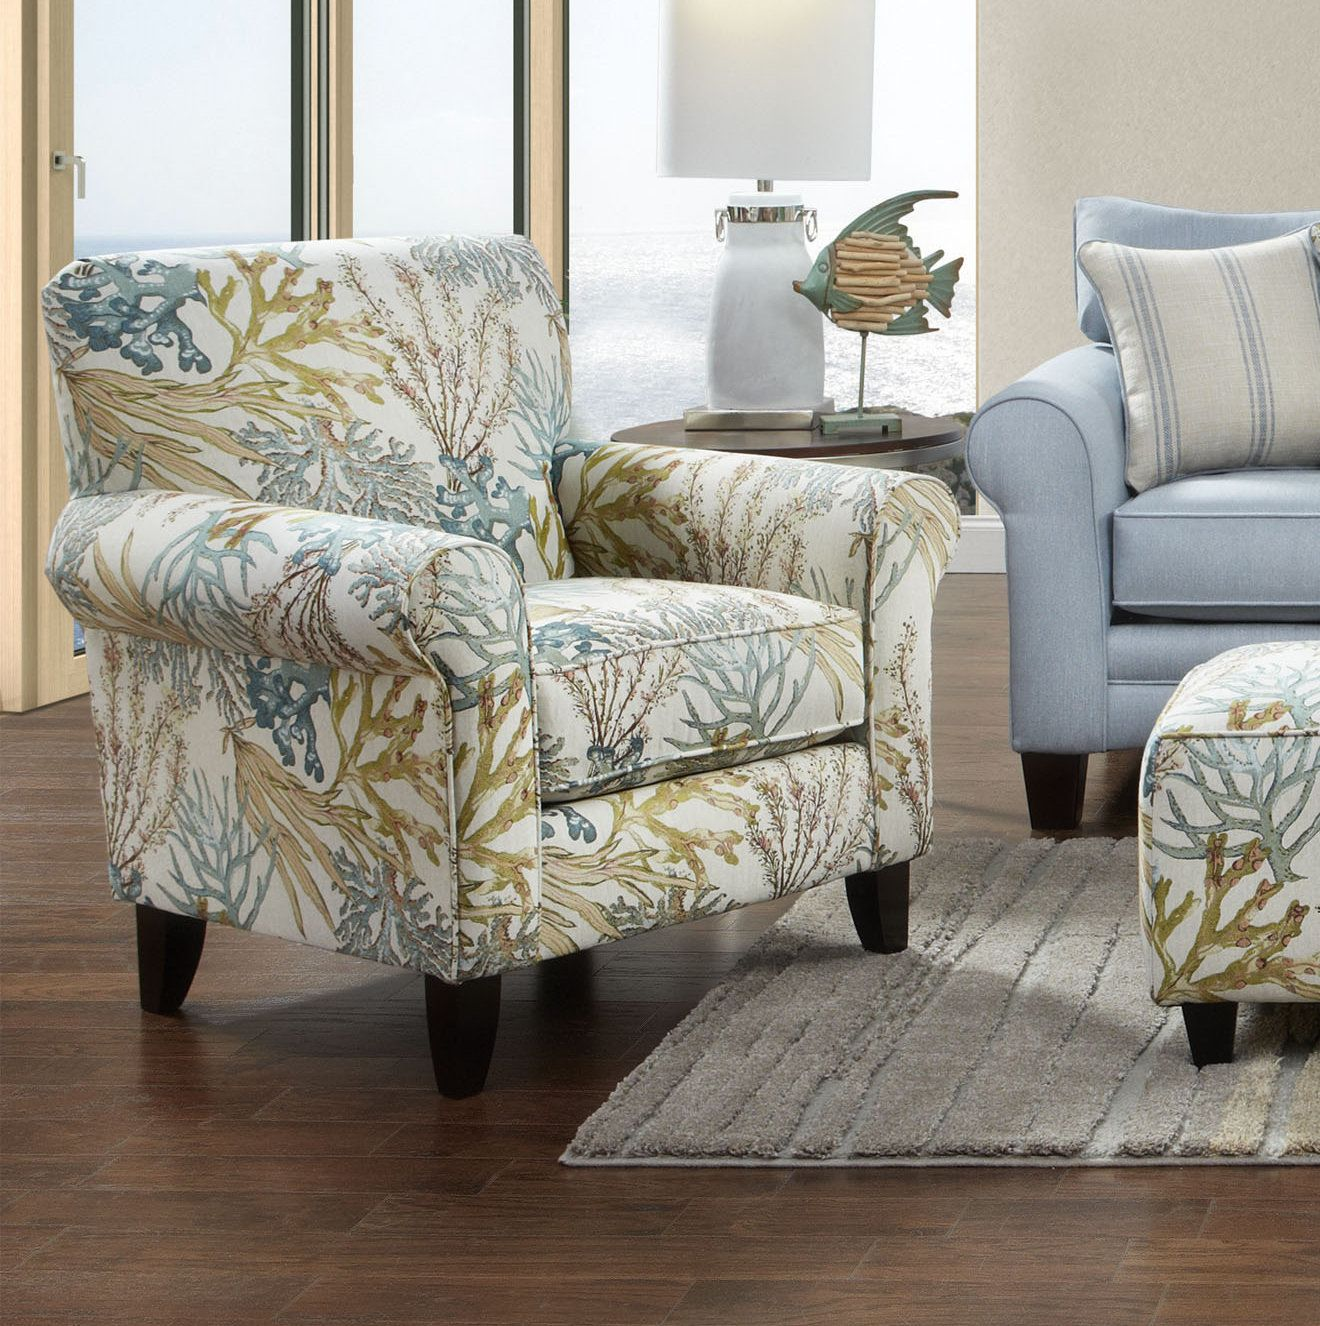 Alexzander cocktail ottoman upholstered chairs